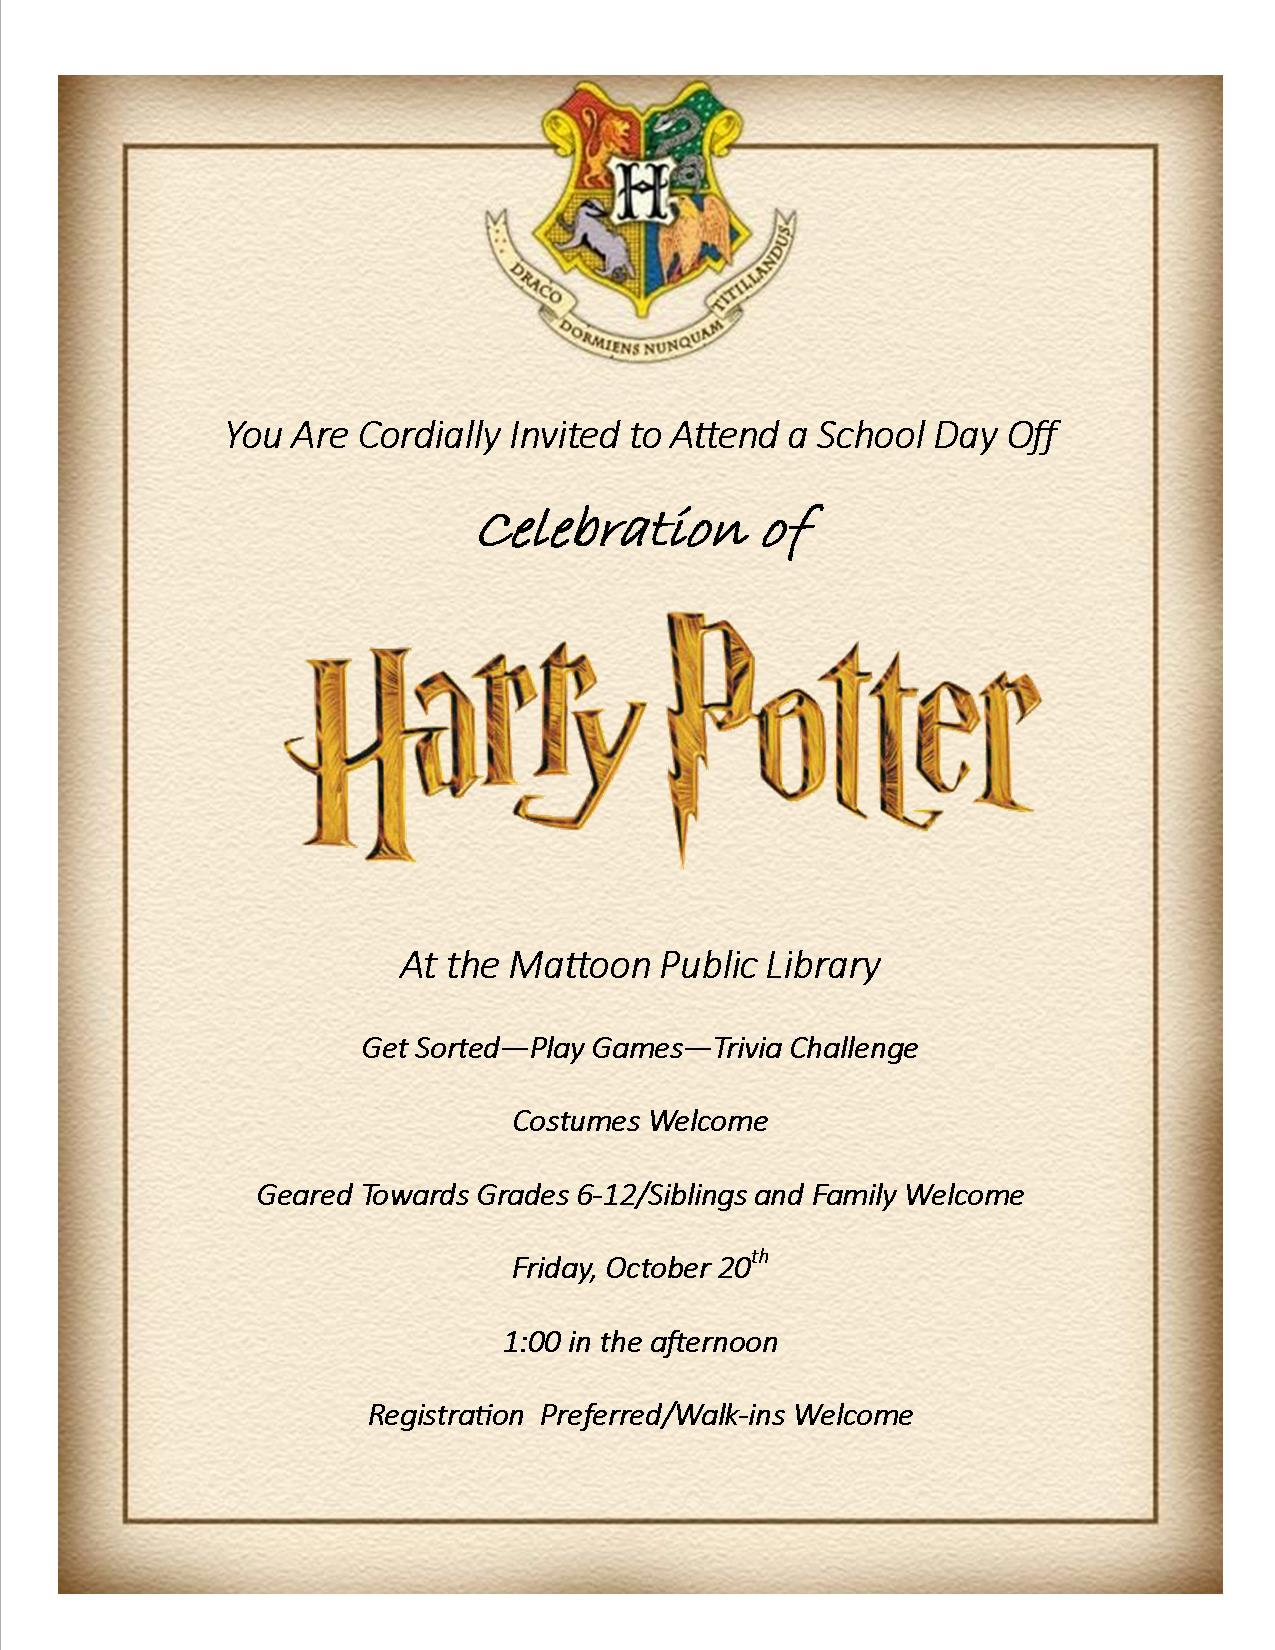 Mattoon Library to Host a Celebration of Harry Potter